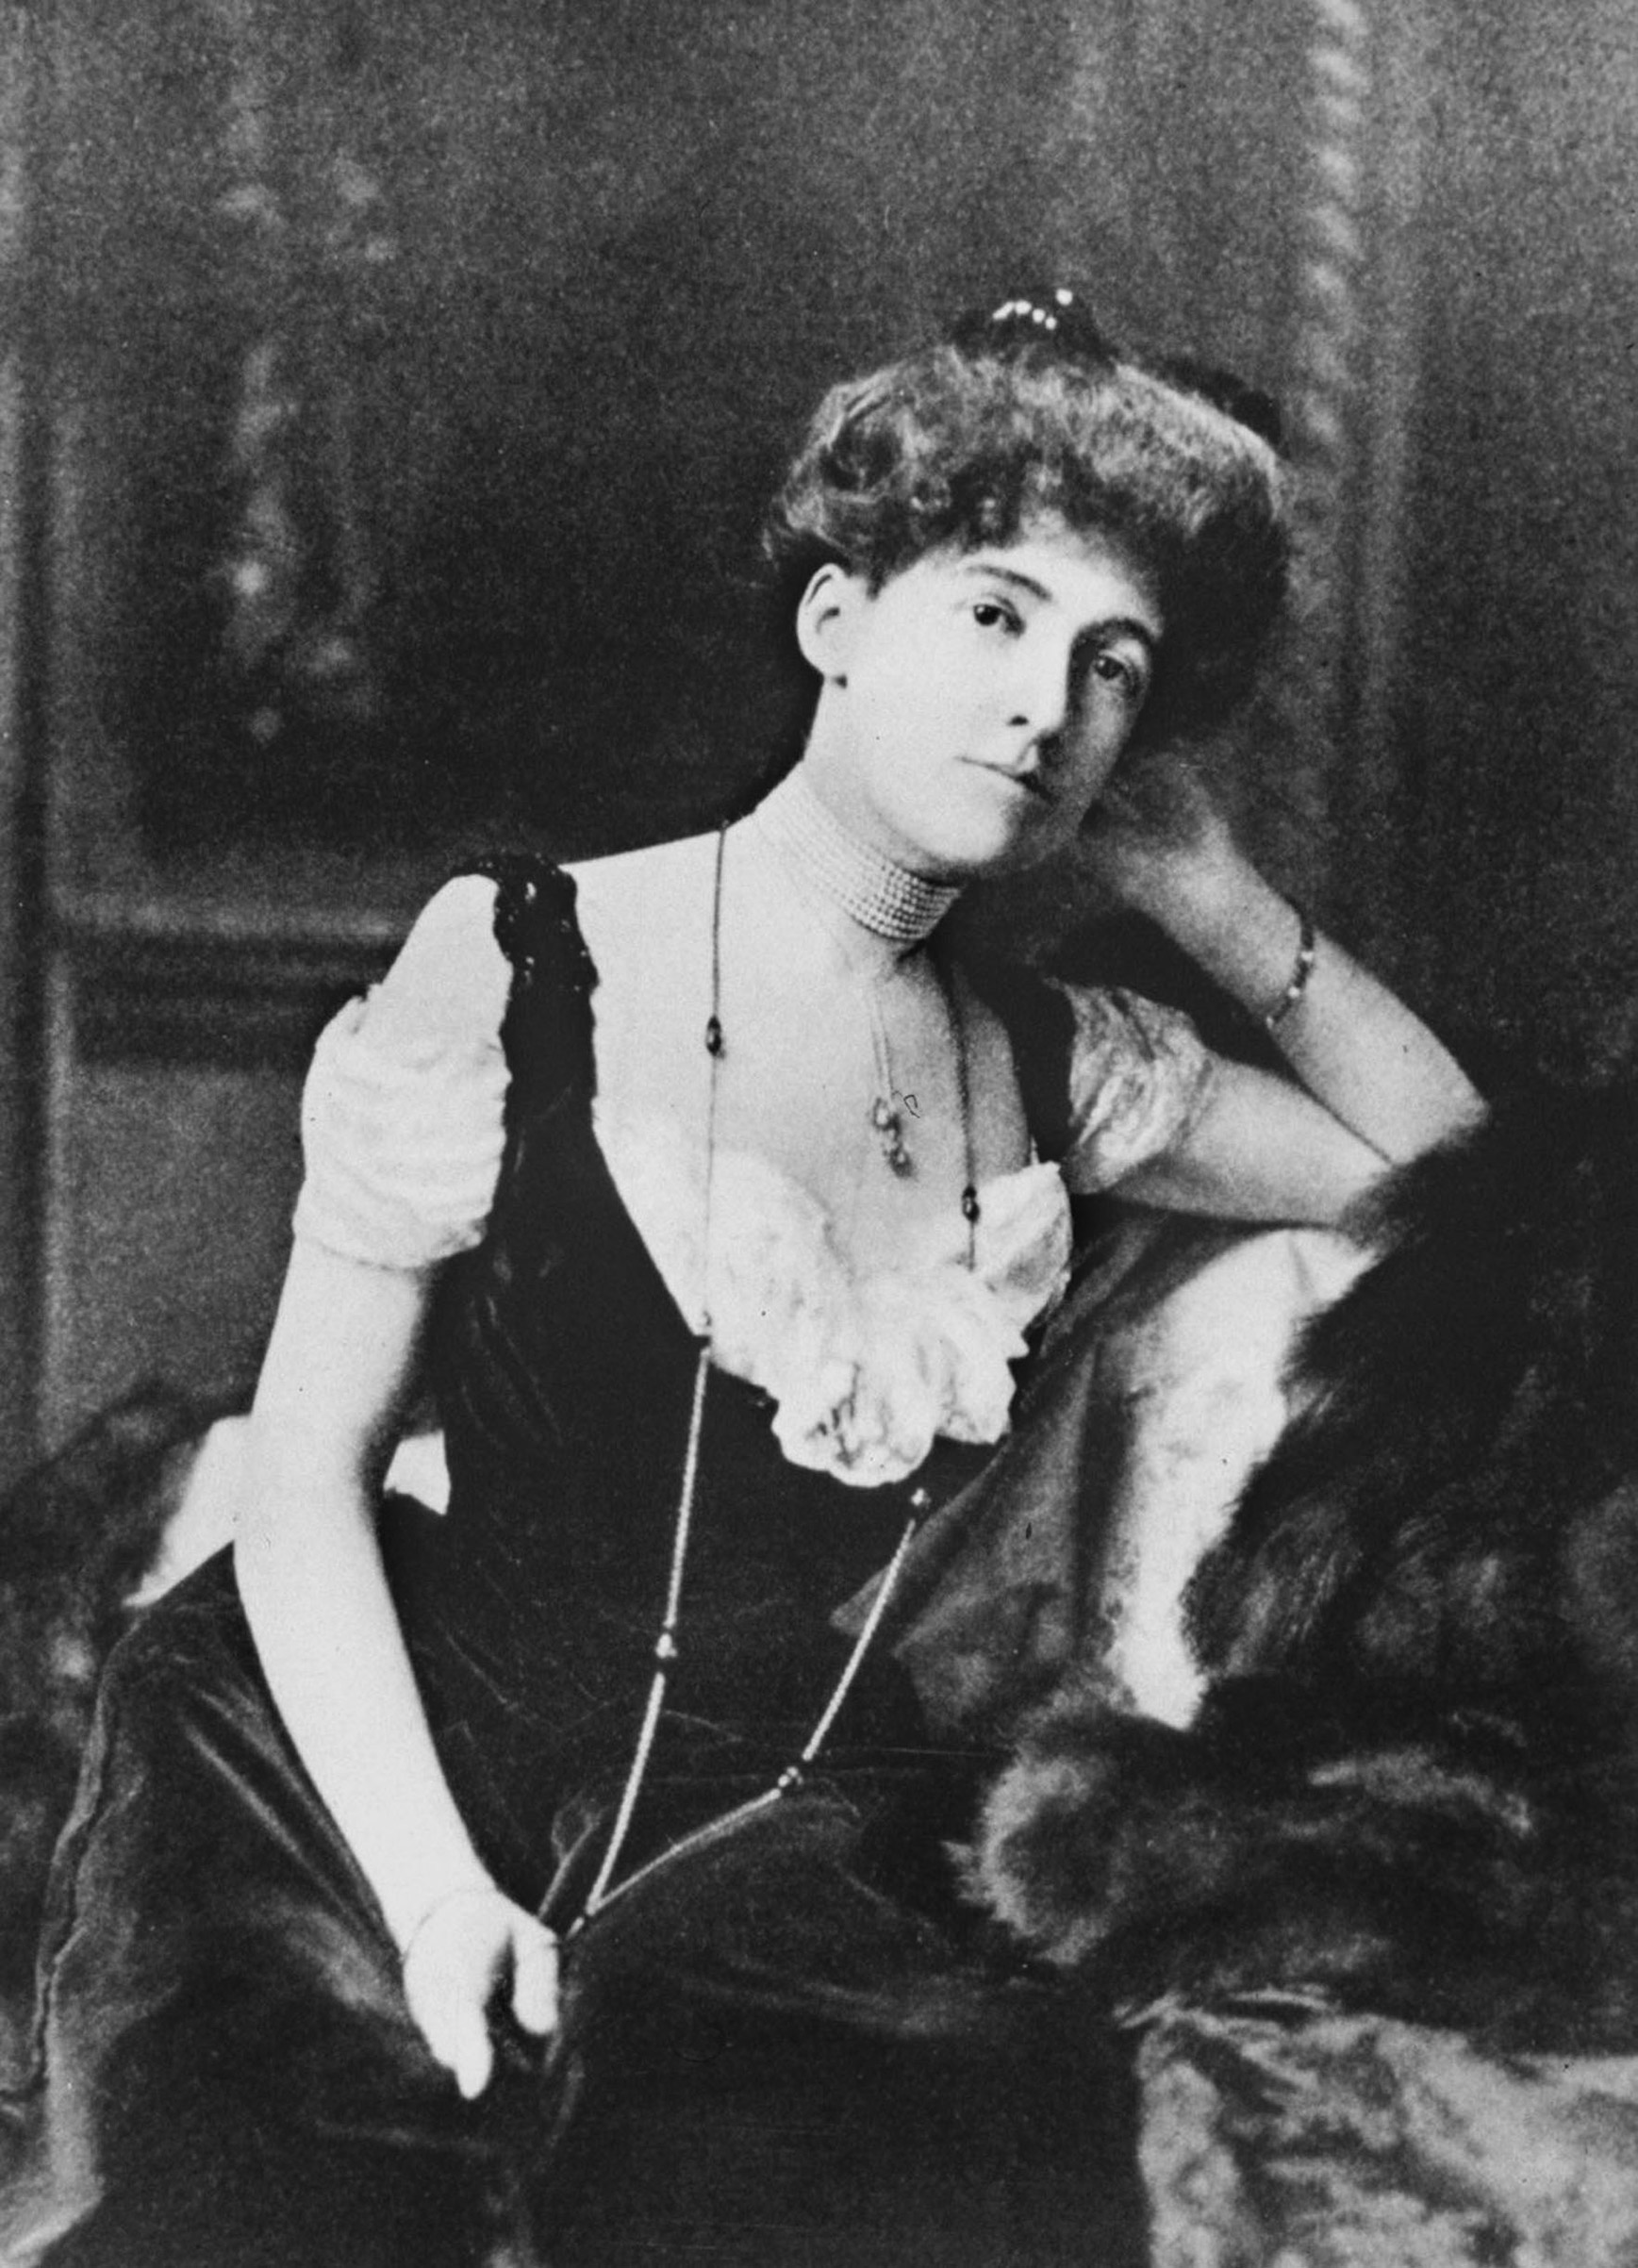 EDITH WHARTON became the first woman in America to win the Pulitzer Prize for Fiction in 1921.